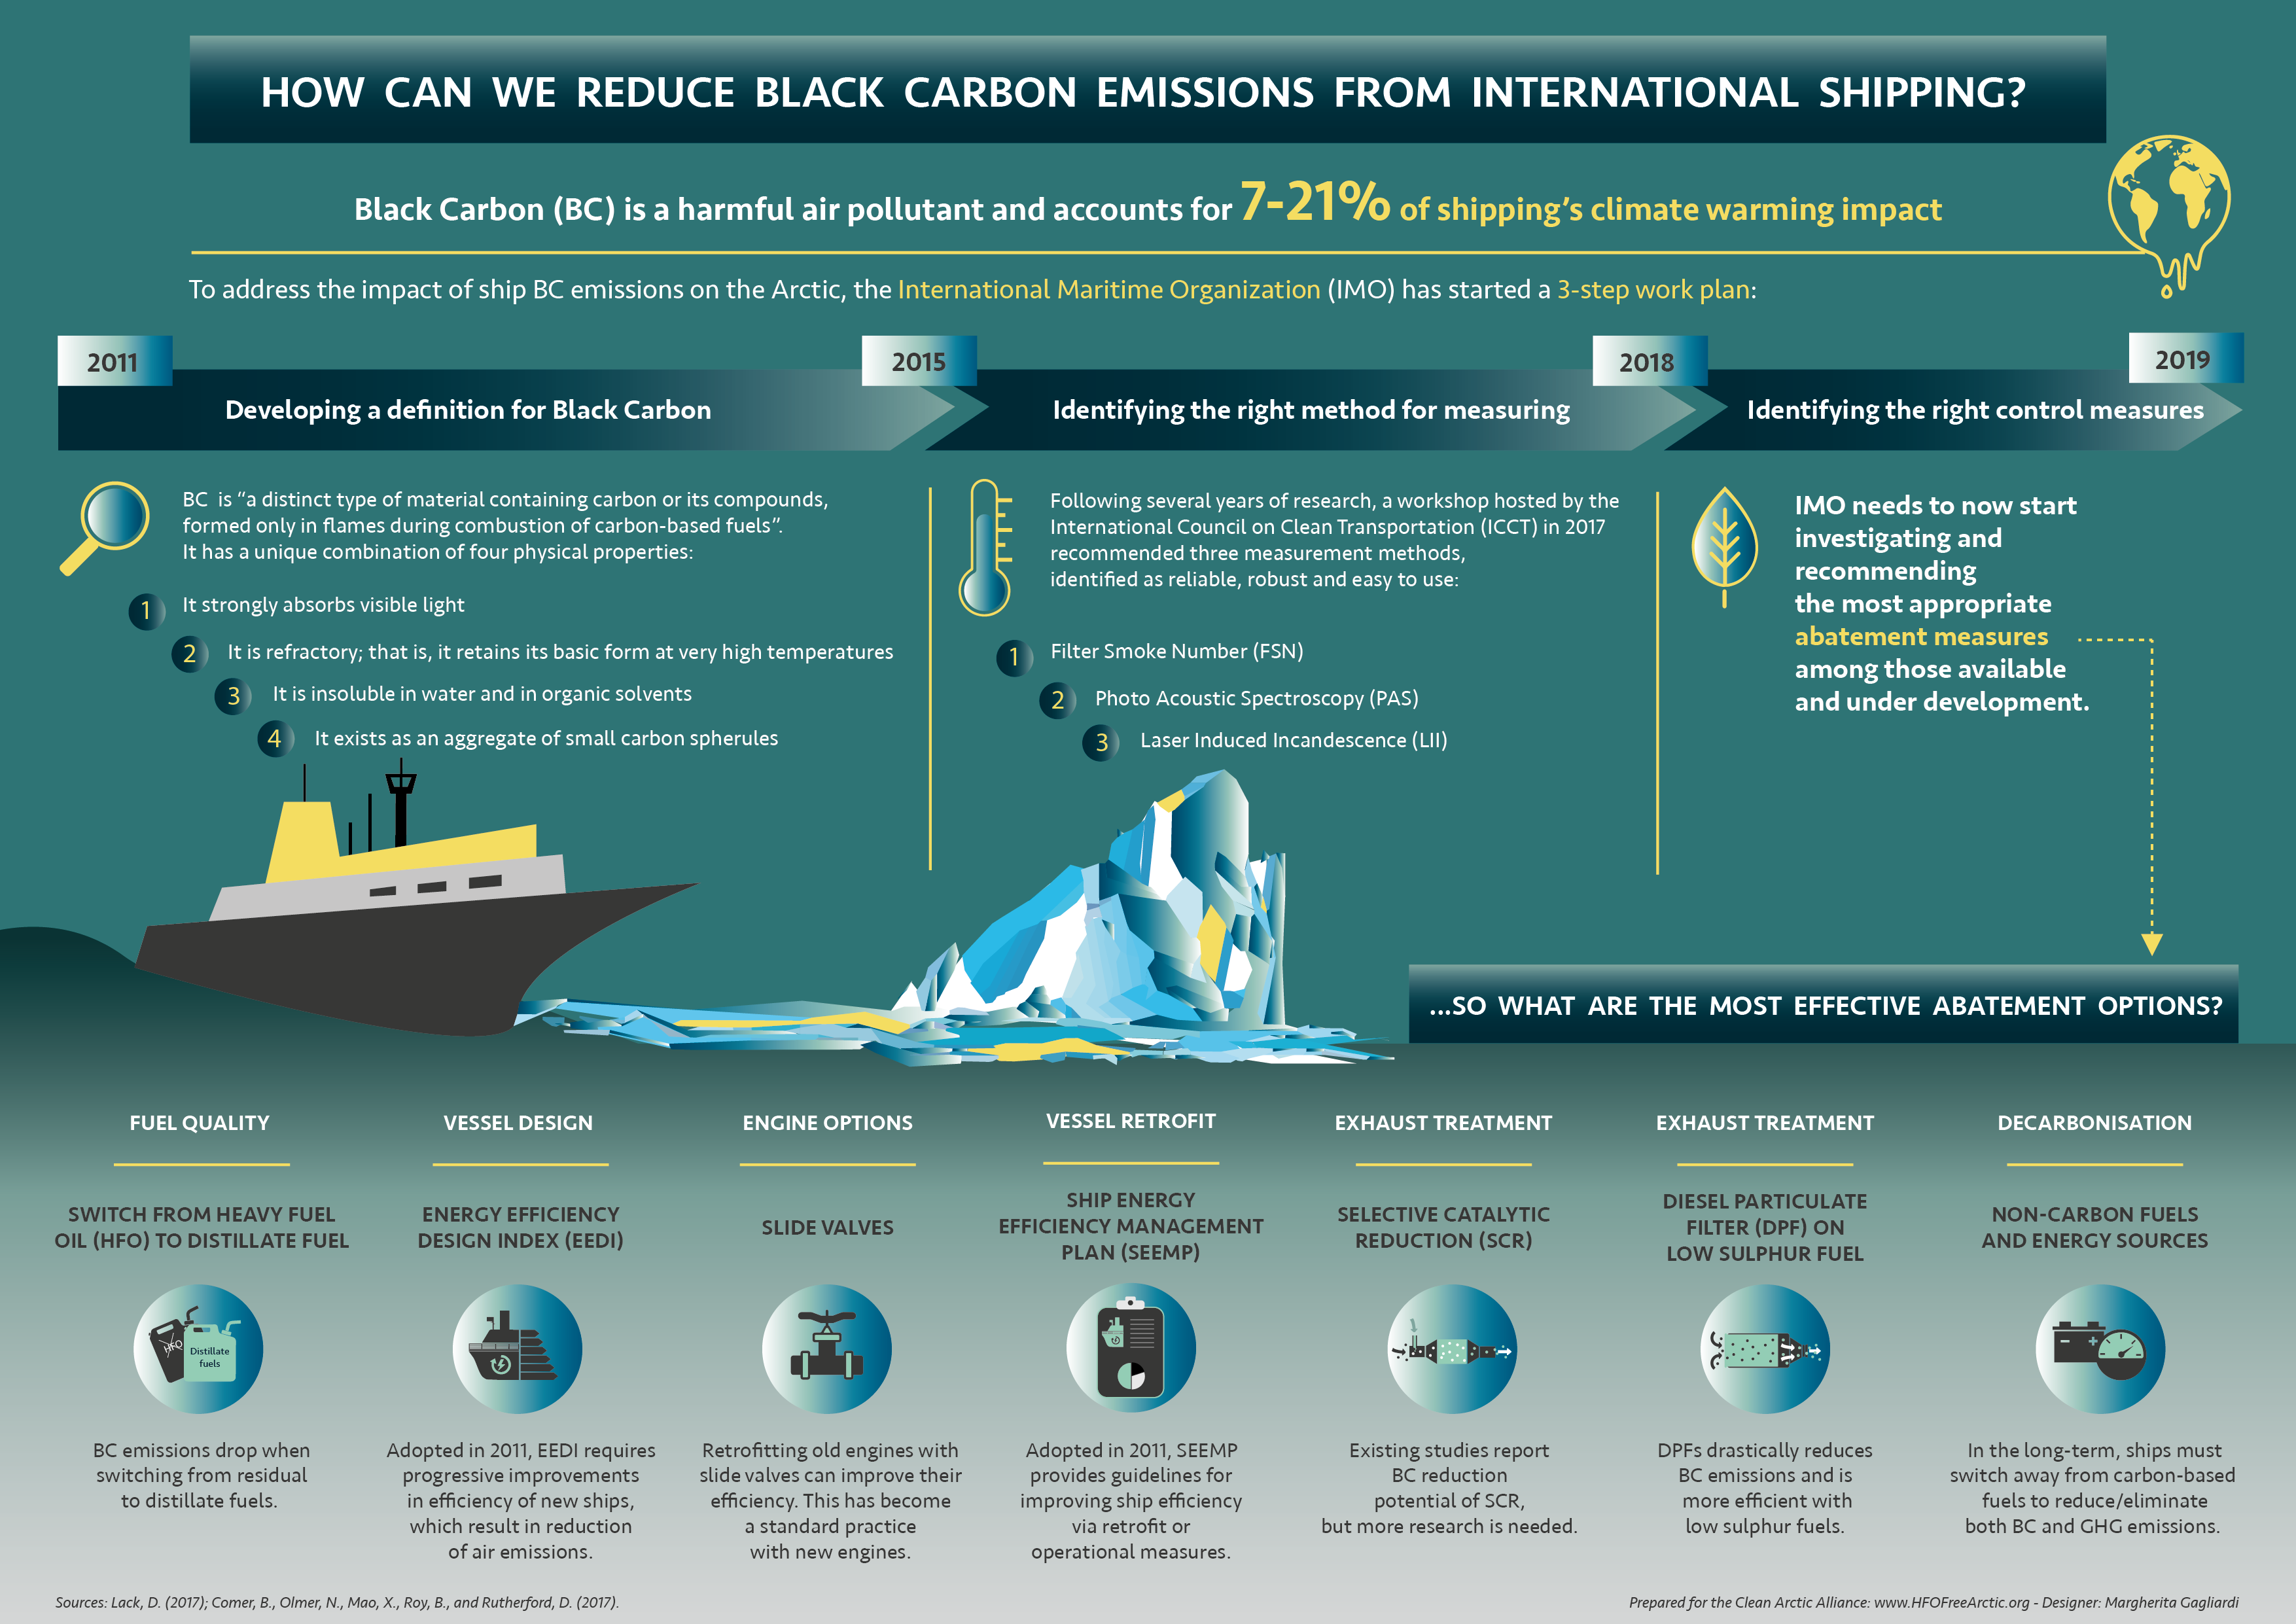 Infographic: How Can We Reduce Black Carbon Emissions From International Shipping?